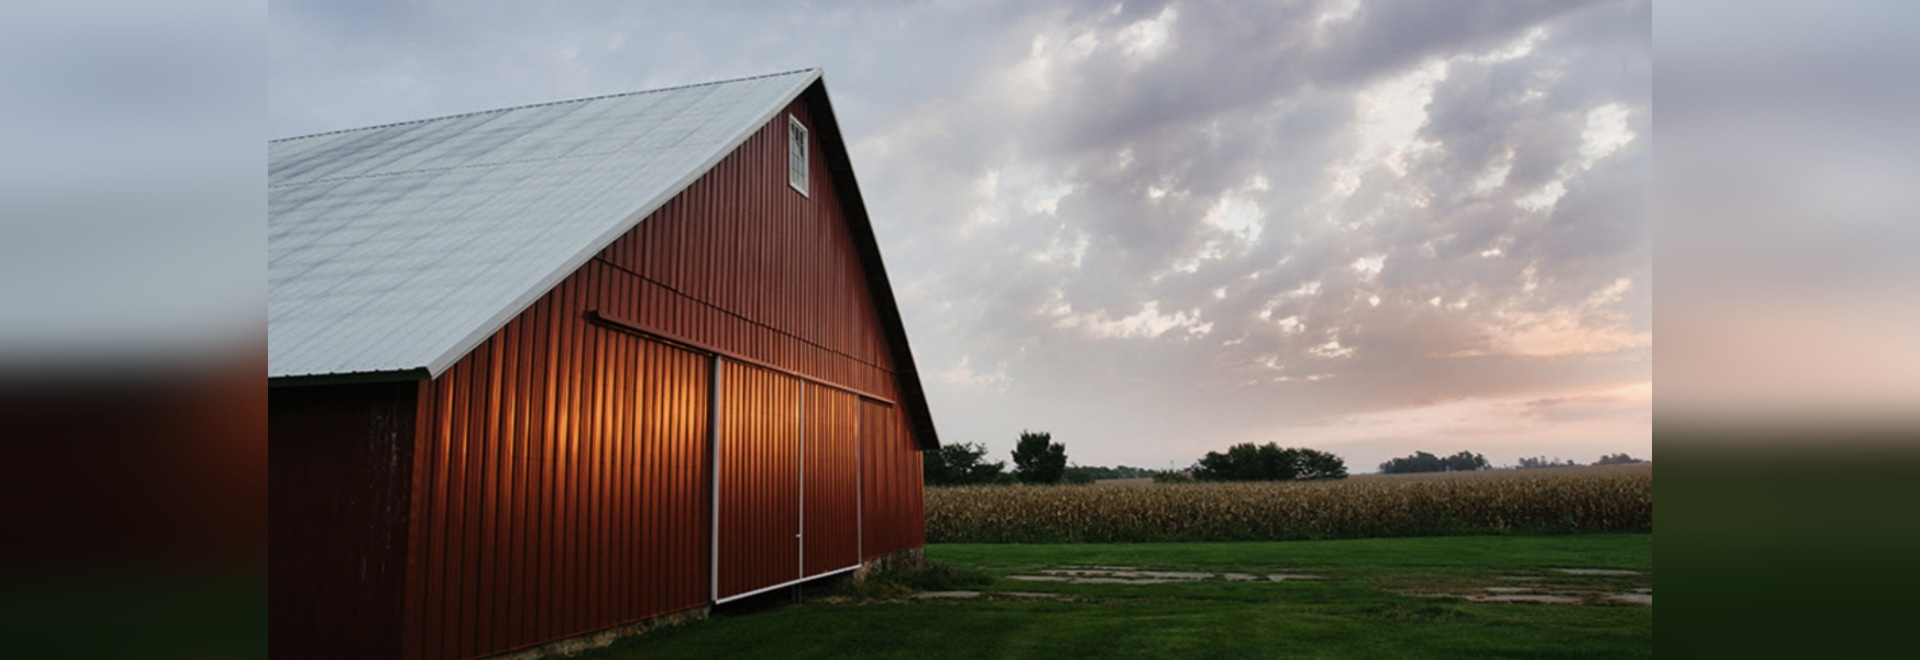 The Midwest Organic Center will be located at Etzel Sugar Grove Farm, part of Iowa's first and only privately owned and operated non-profit nature center. Photo credit: Rodale Institute.